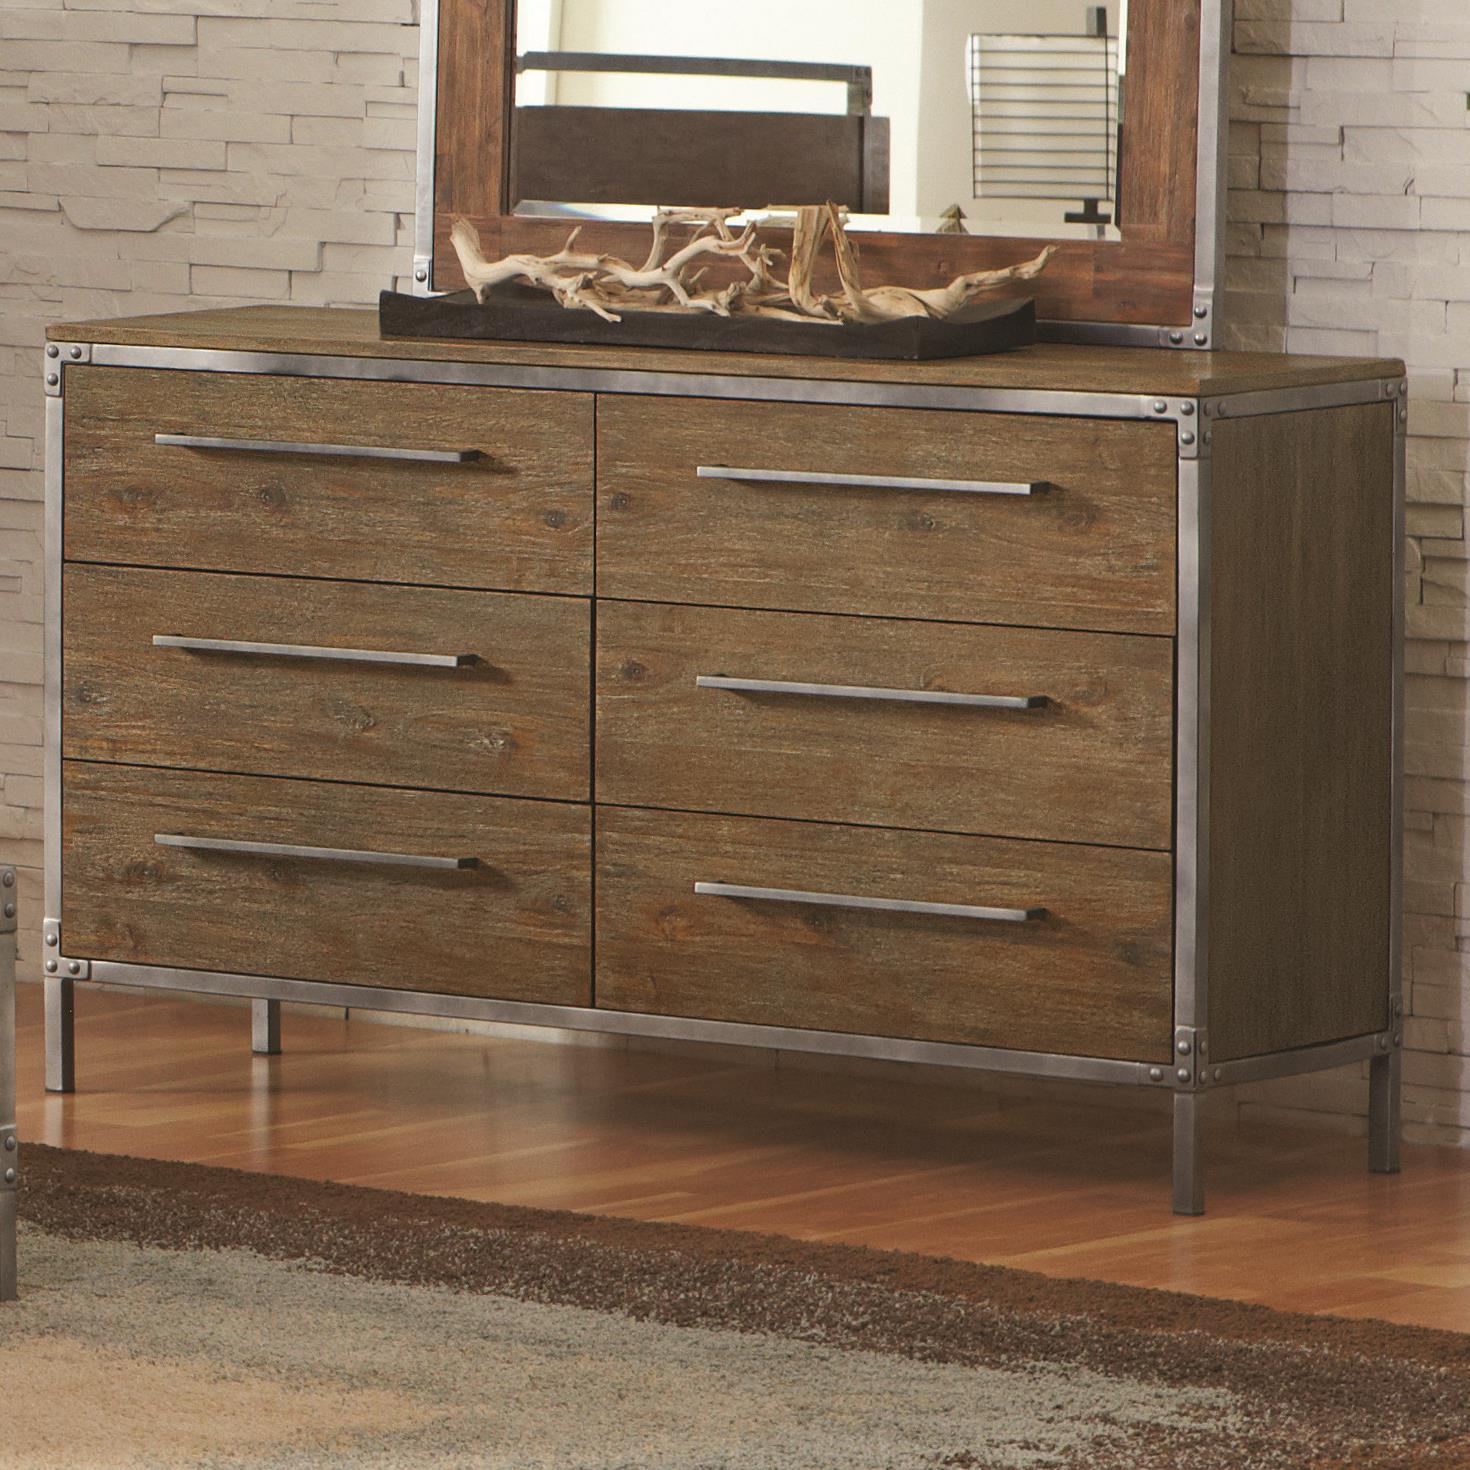 Coaster Arcadia 20380 6 Drawer Dresser - Item Number: 203803